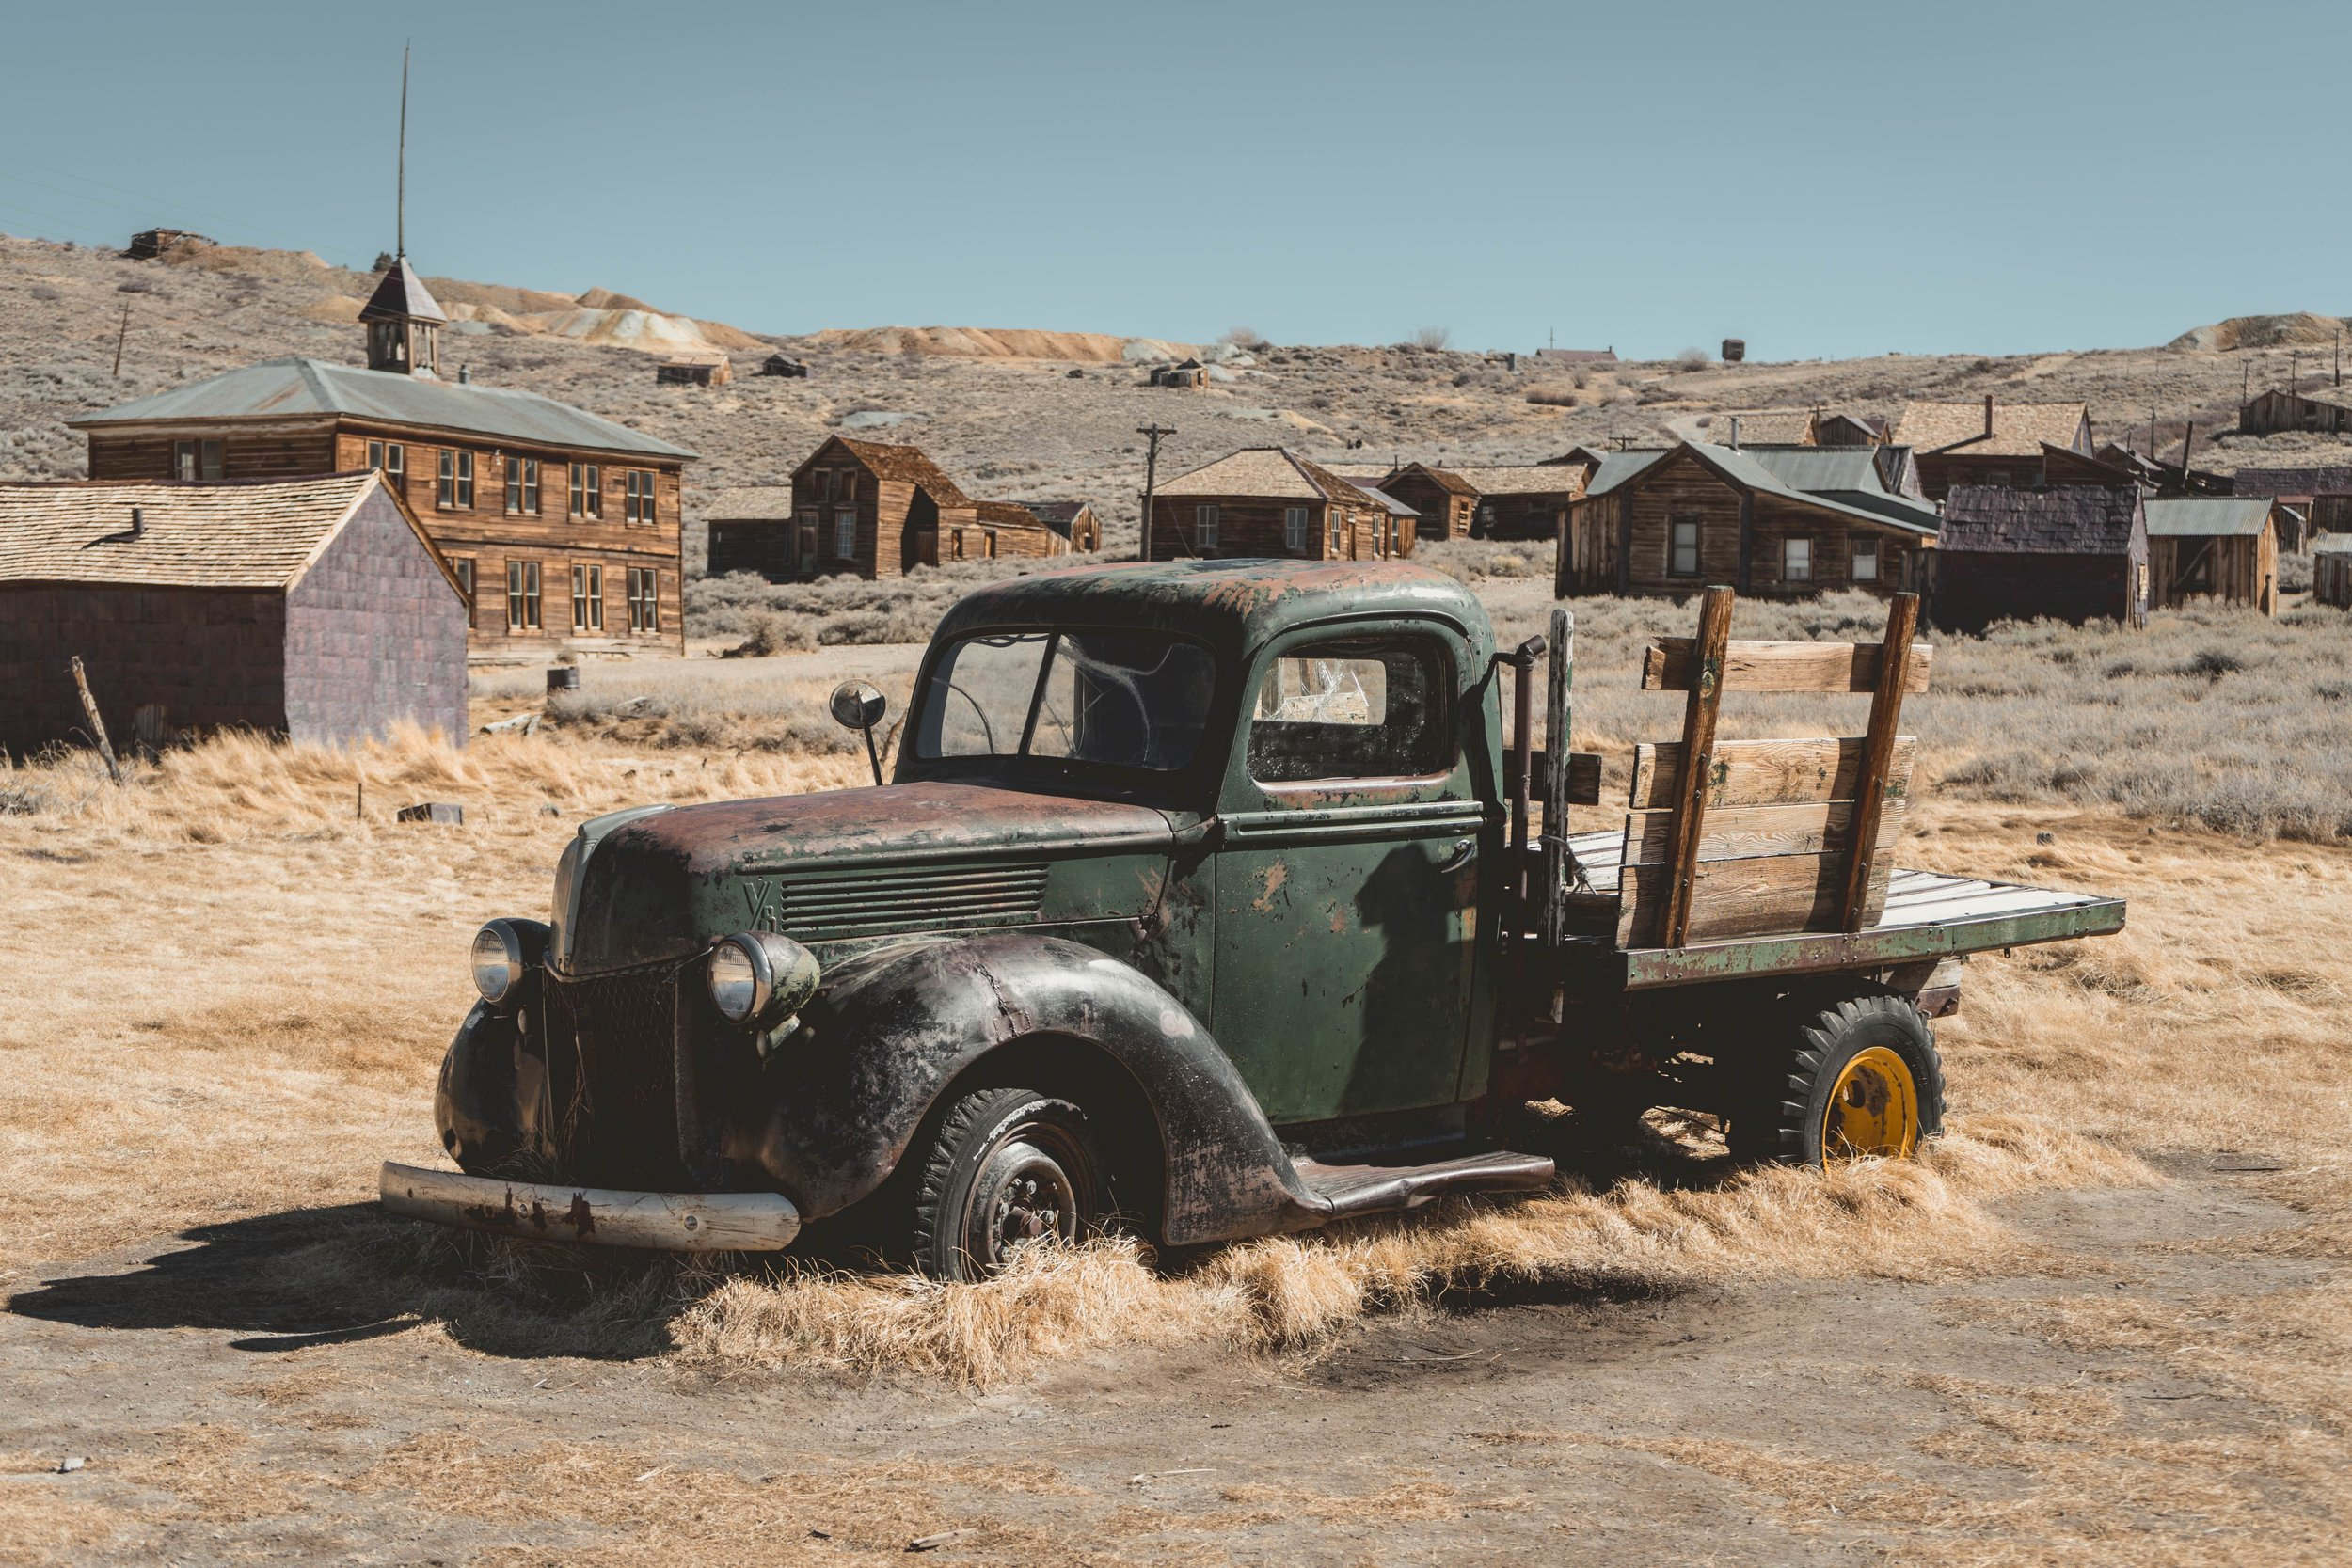 Rusted - Bodie, CA 2018I was excited like a little kid when I found this magical place, Bodie. It's a ghost town sitting in the middle of nowhere, and you have to struggle through a 2-mile unpaved road to get there. The buildings, cars, furniture... everything is like frozen at that time frame in early 20th century, and you will become a time traveler stealing a glimpse of the details of people's life hundred years ago.